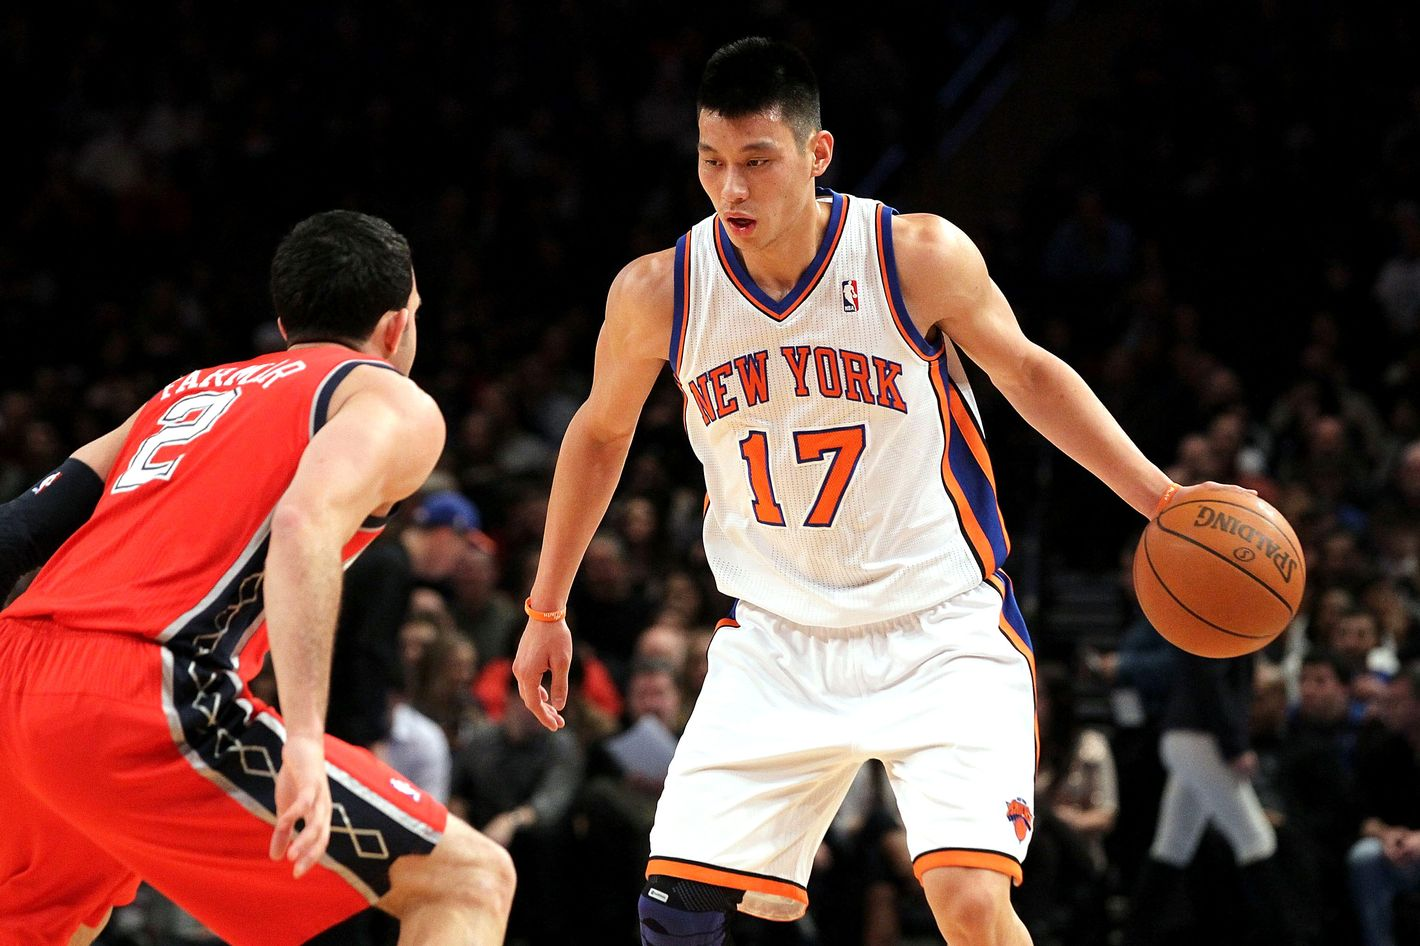 f3c0d3ff3e0d Linsanity revisited  How Jeremy Lin became an instant NBA superstar ...